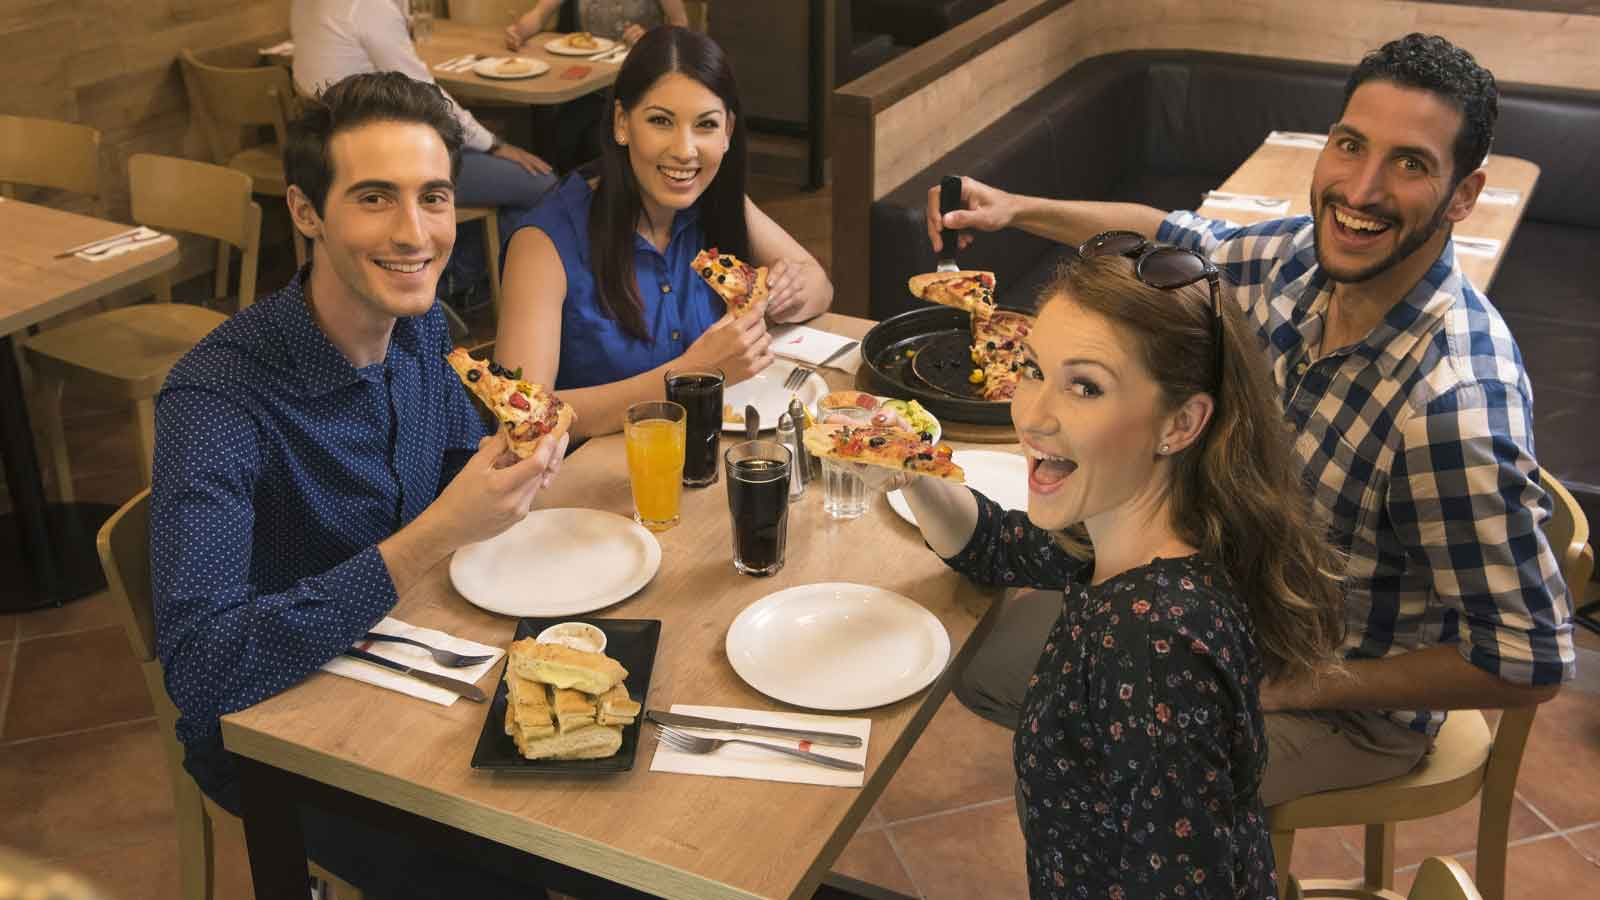 Pizza Hut launch 'All You Can Eat' promotion